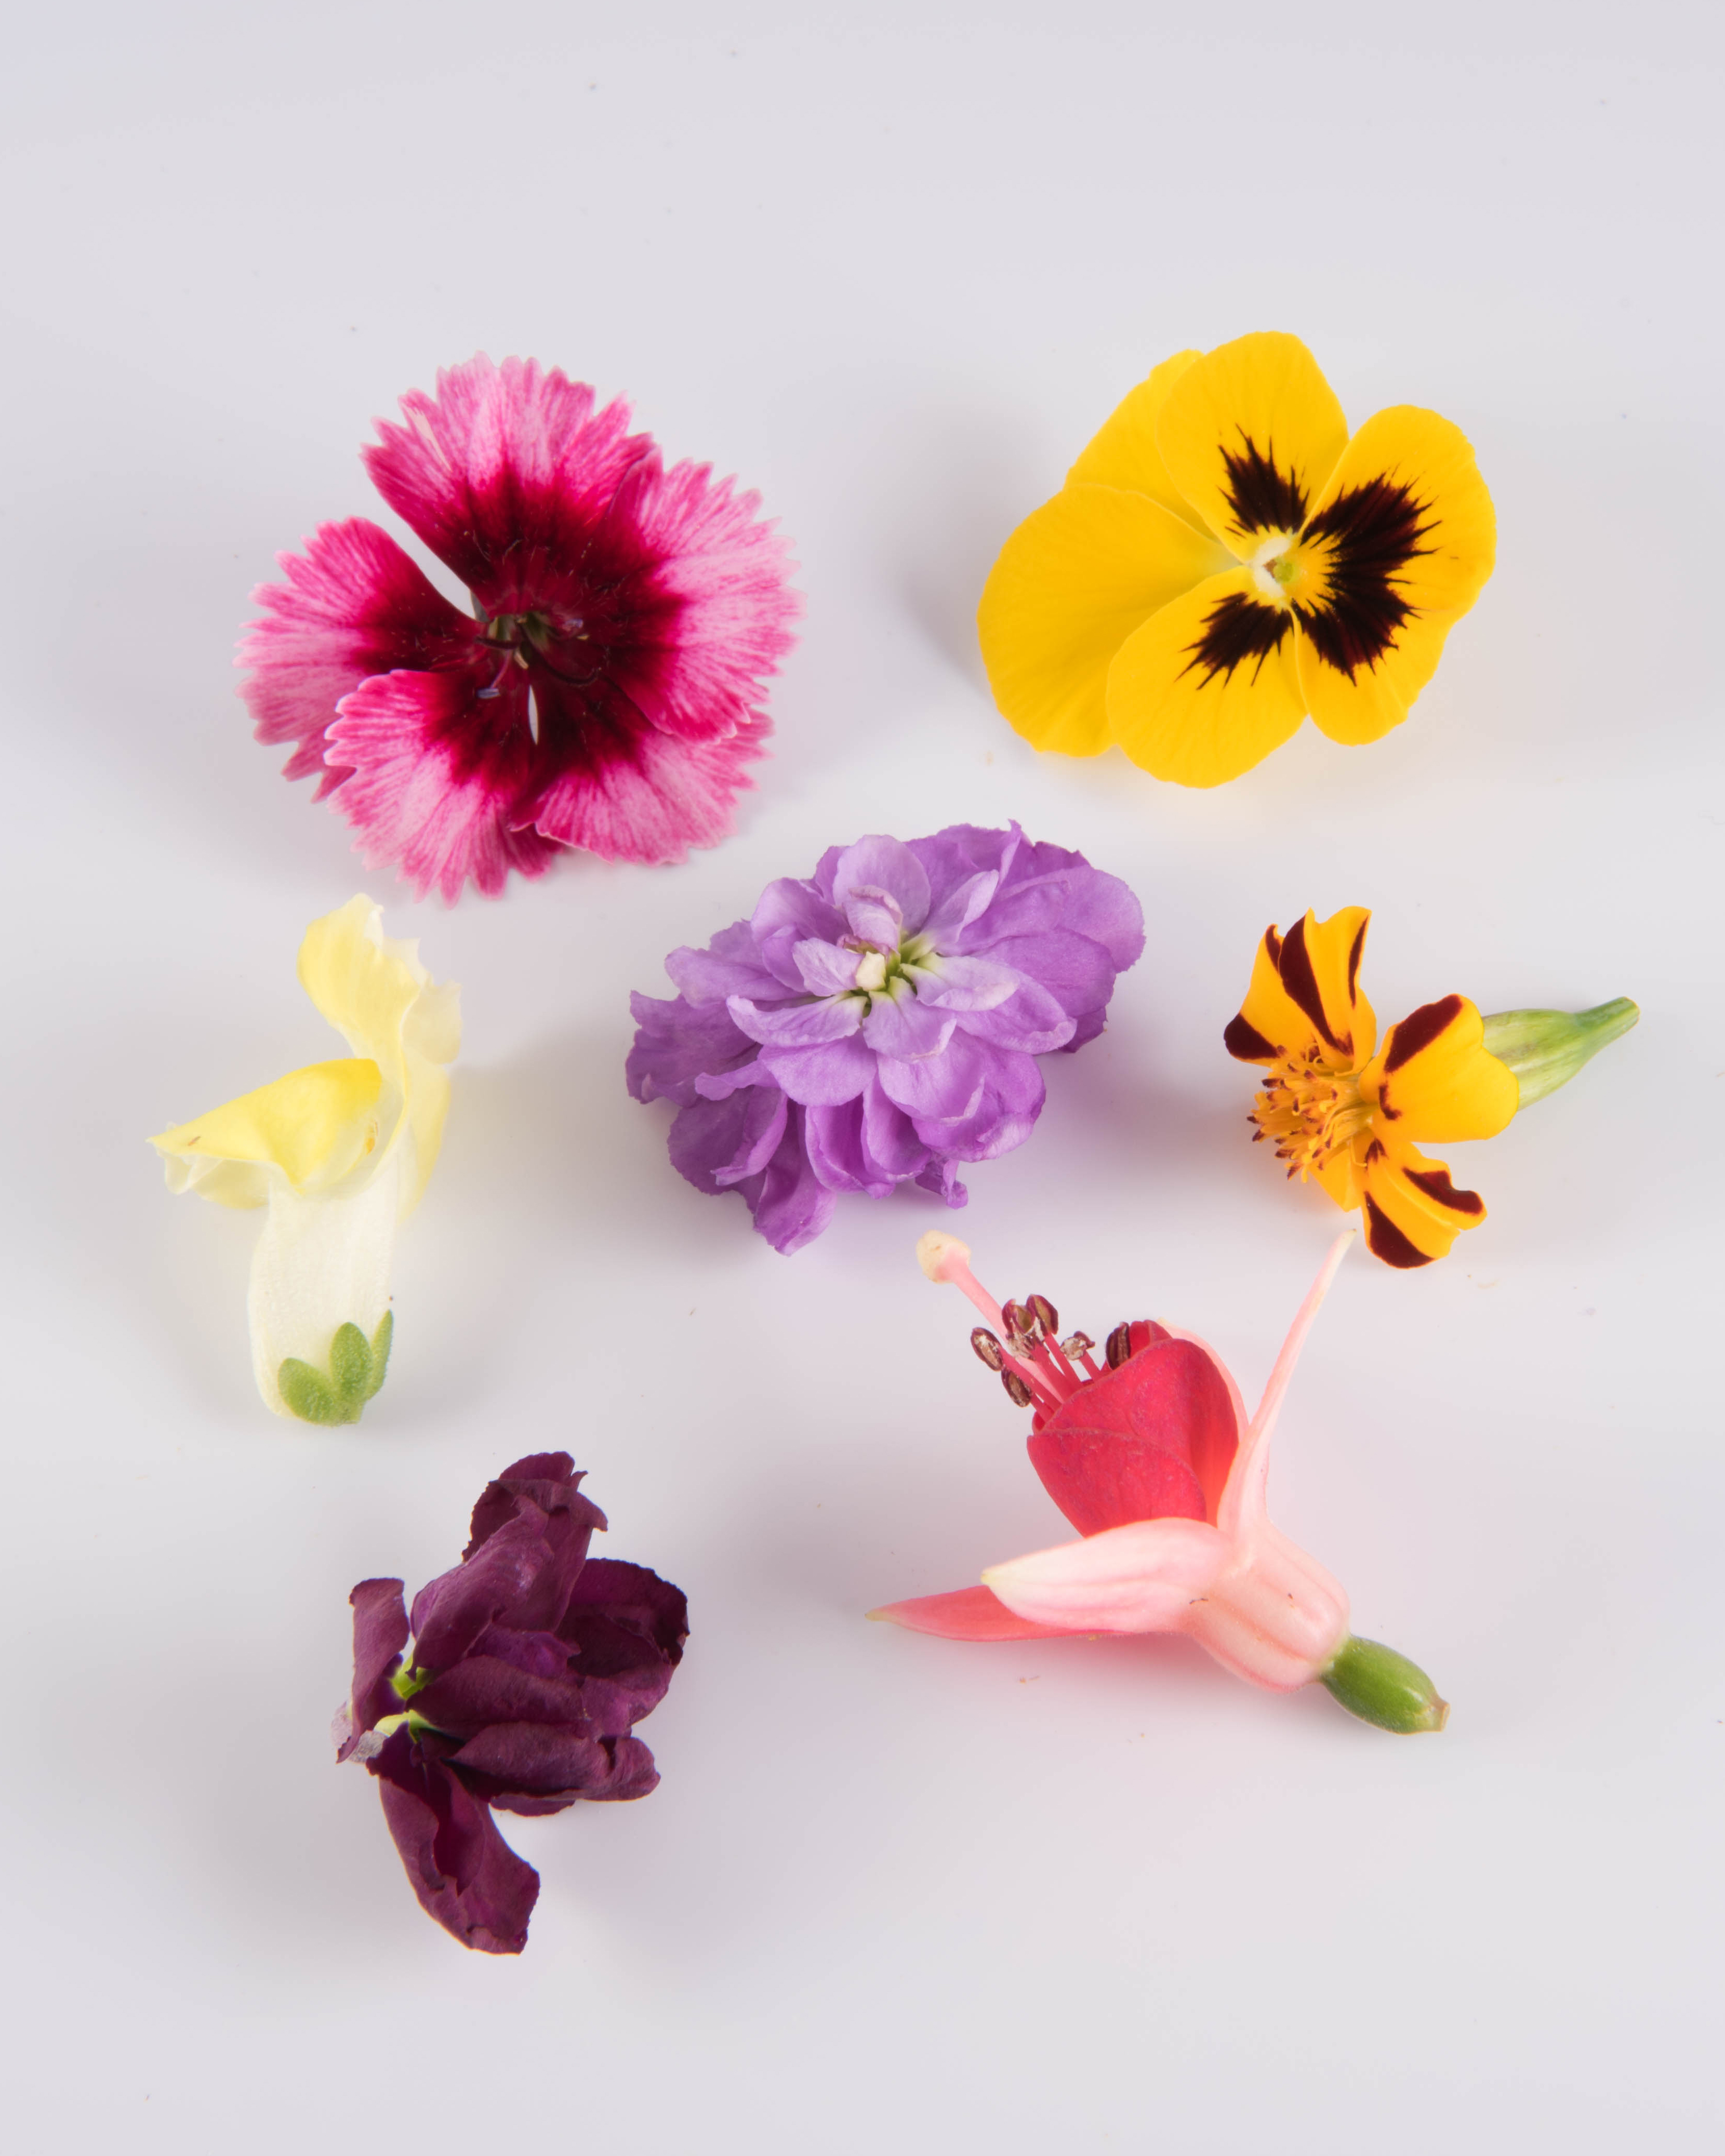 Chef Garden: Mixed Edible Flowers: Wide Range Of Hues, Flavors